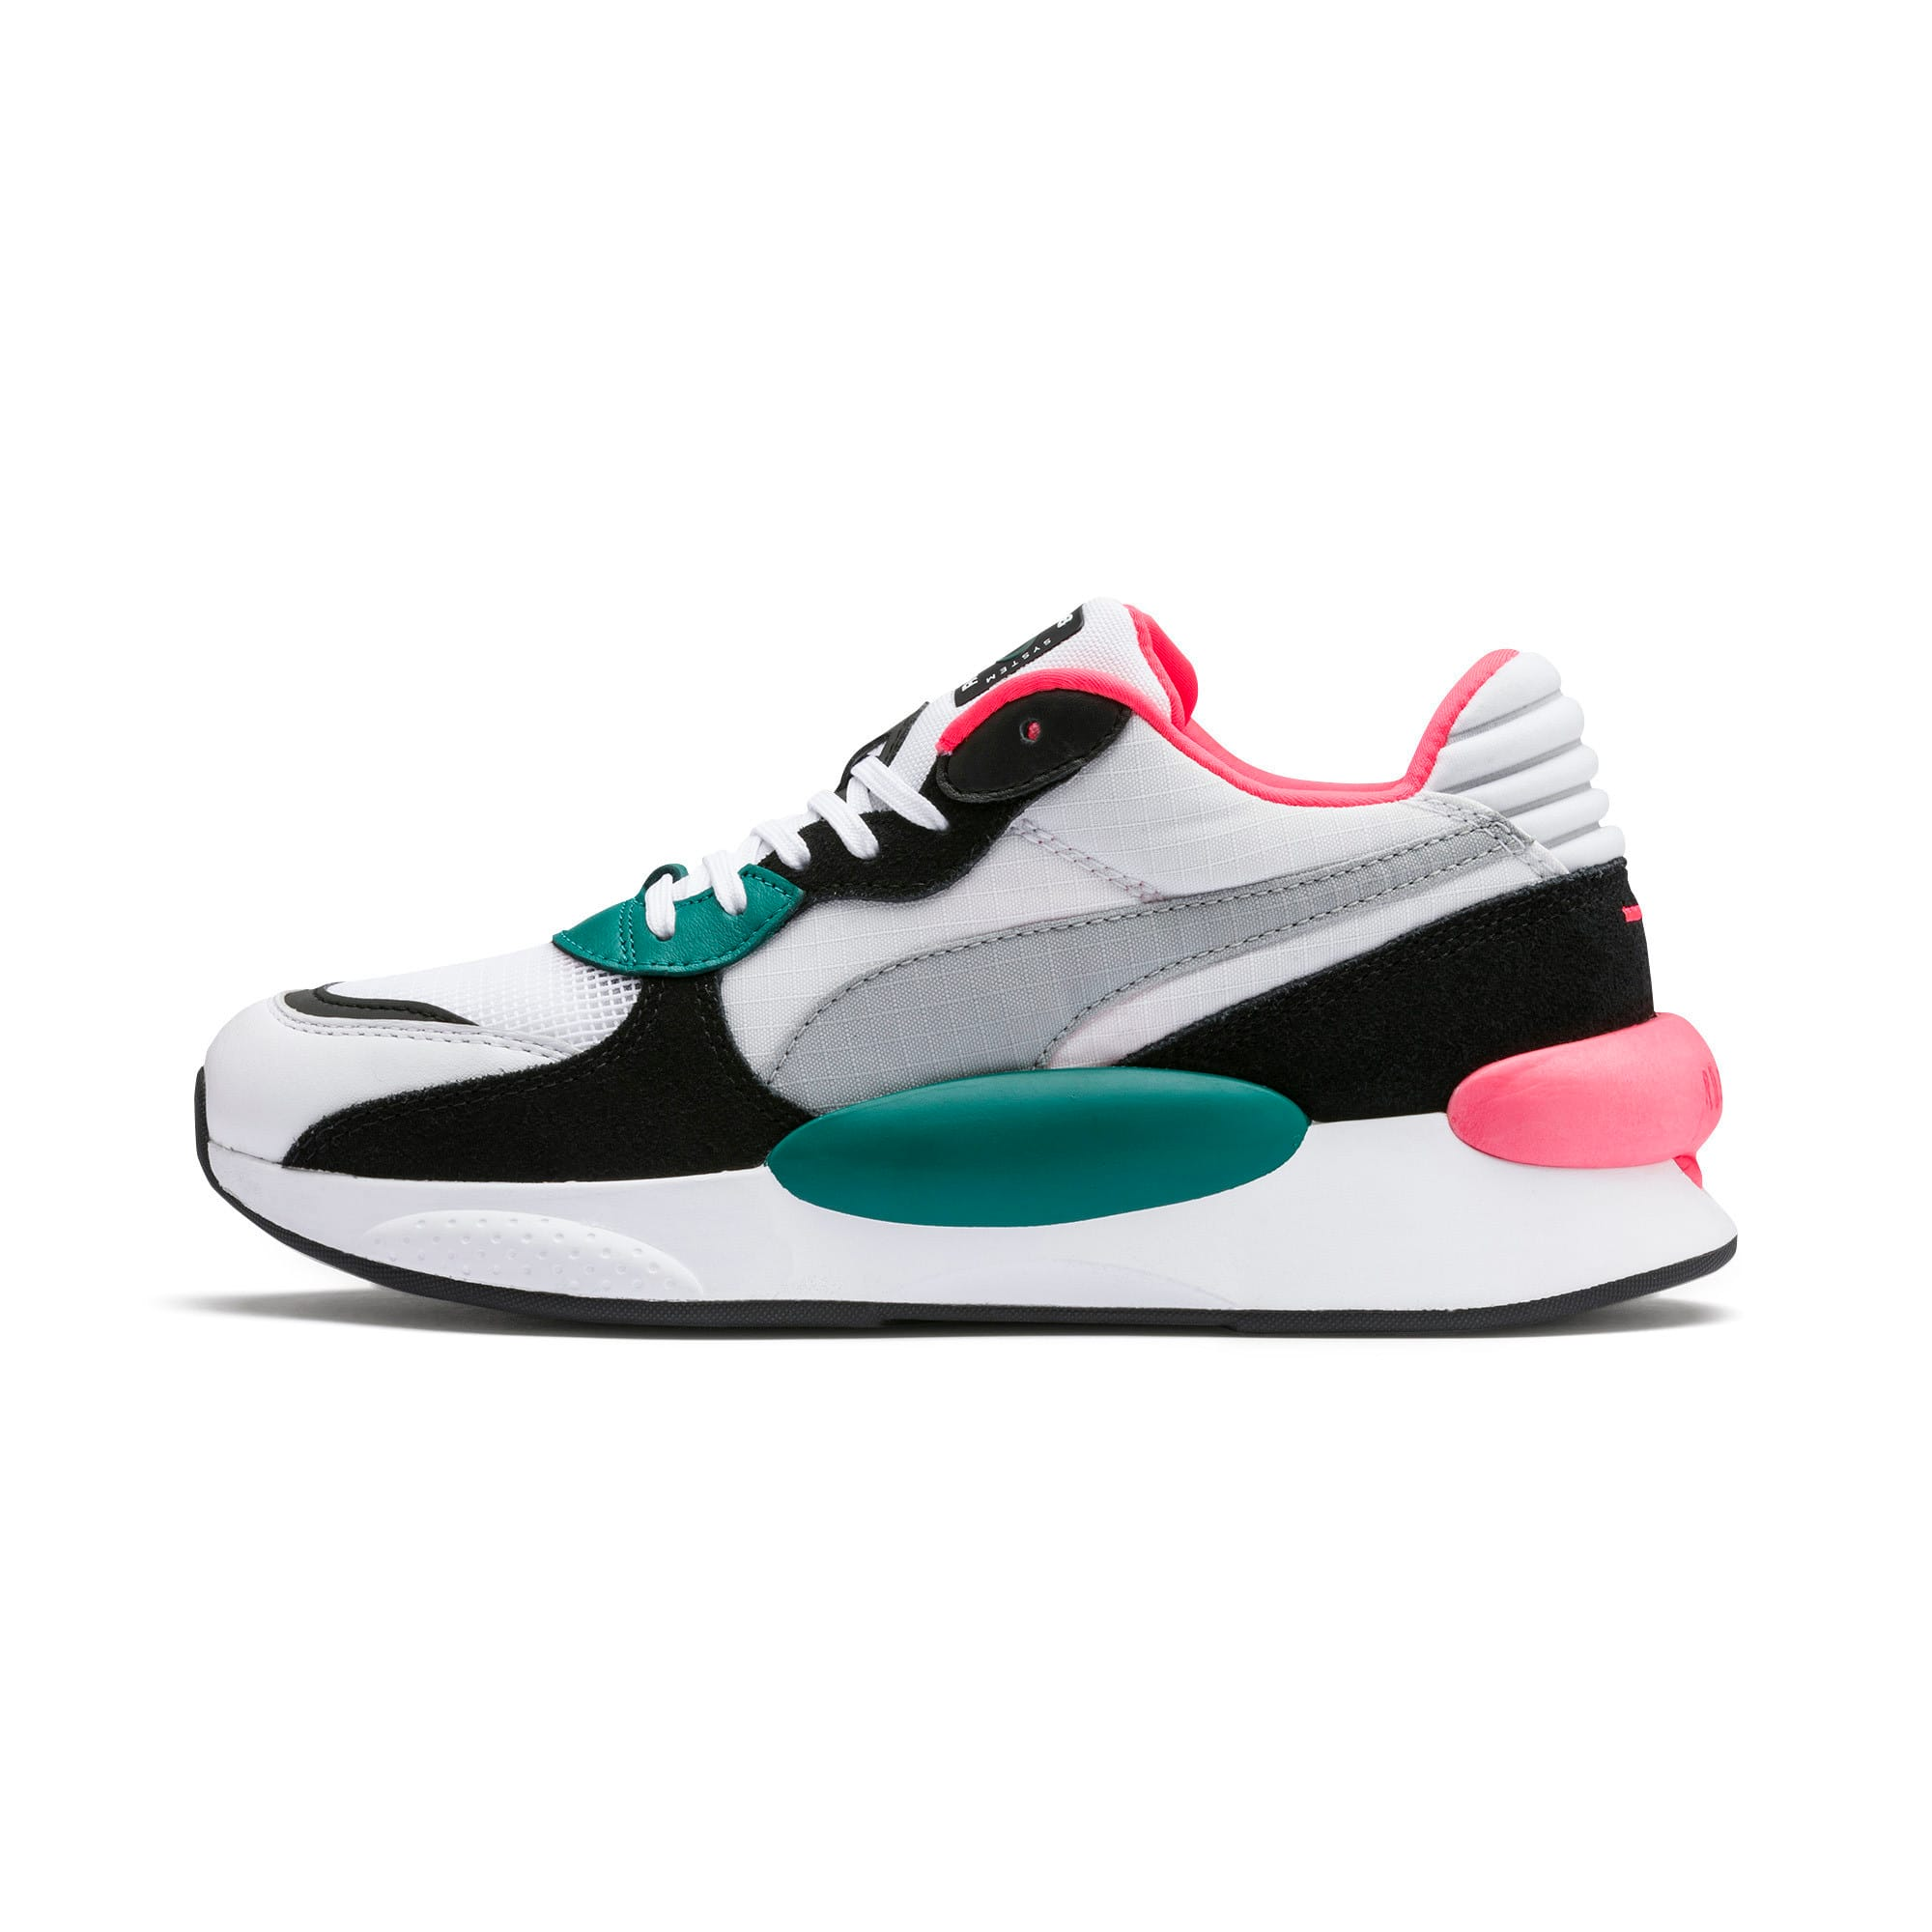 Thumbnail 1 van RS 9.8 Space sportschoenen, Puma White-blauwgroen, medium